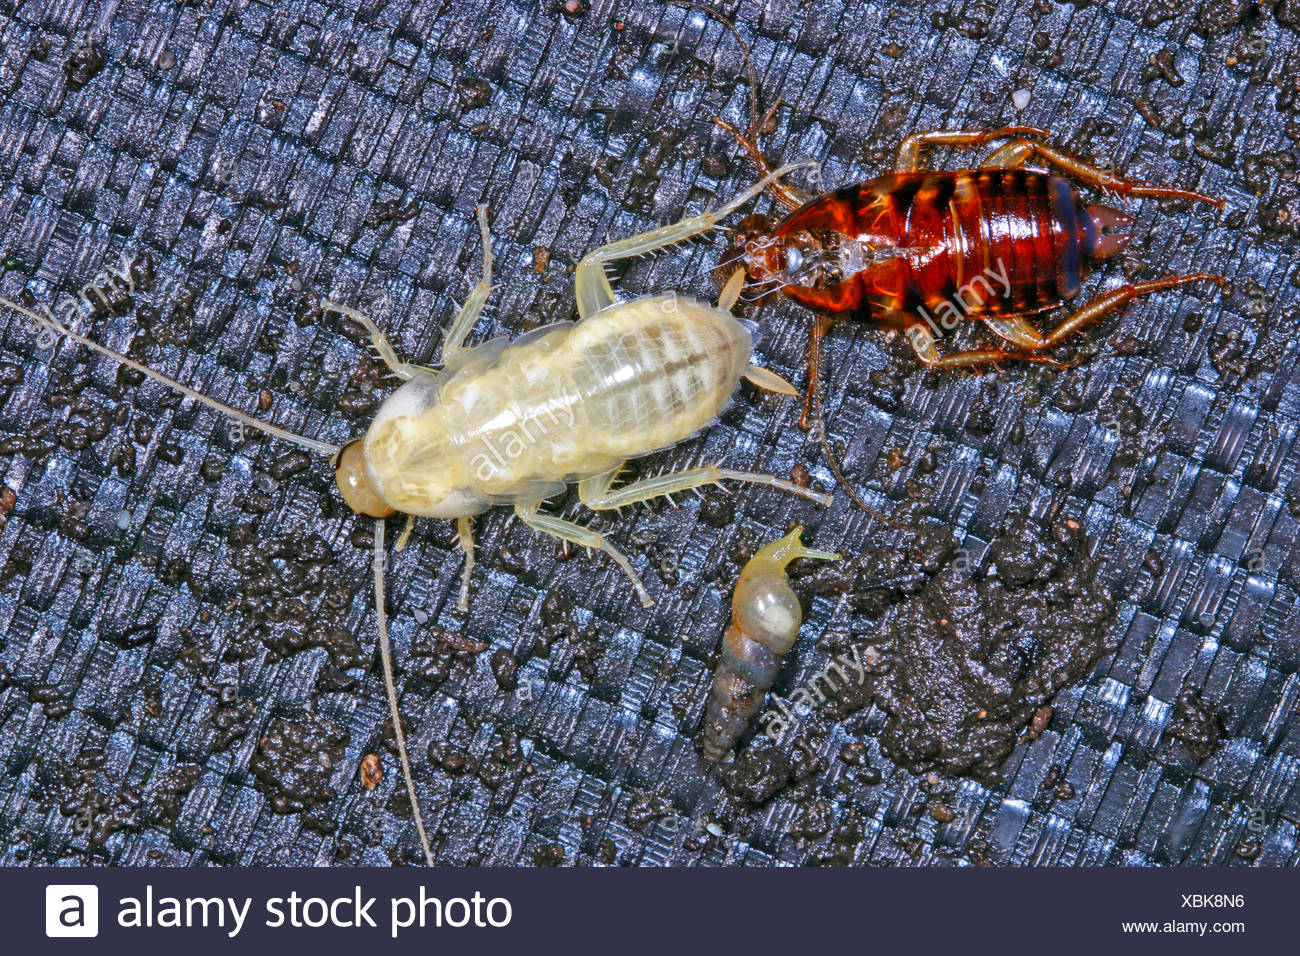 Australian cockroach (Periplaneta australasiae, Blatta australasiae), two cockroaches, one of them casted its skin, Germany Stock Photo